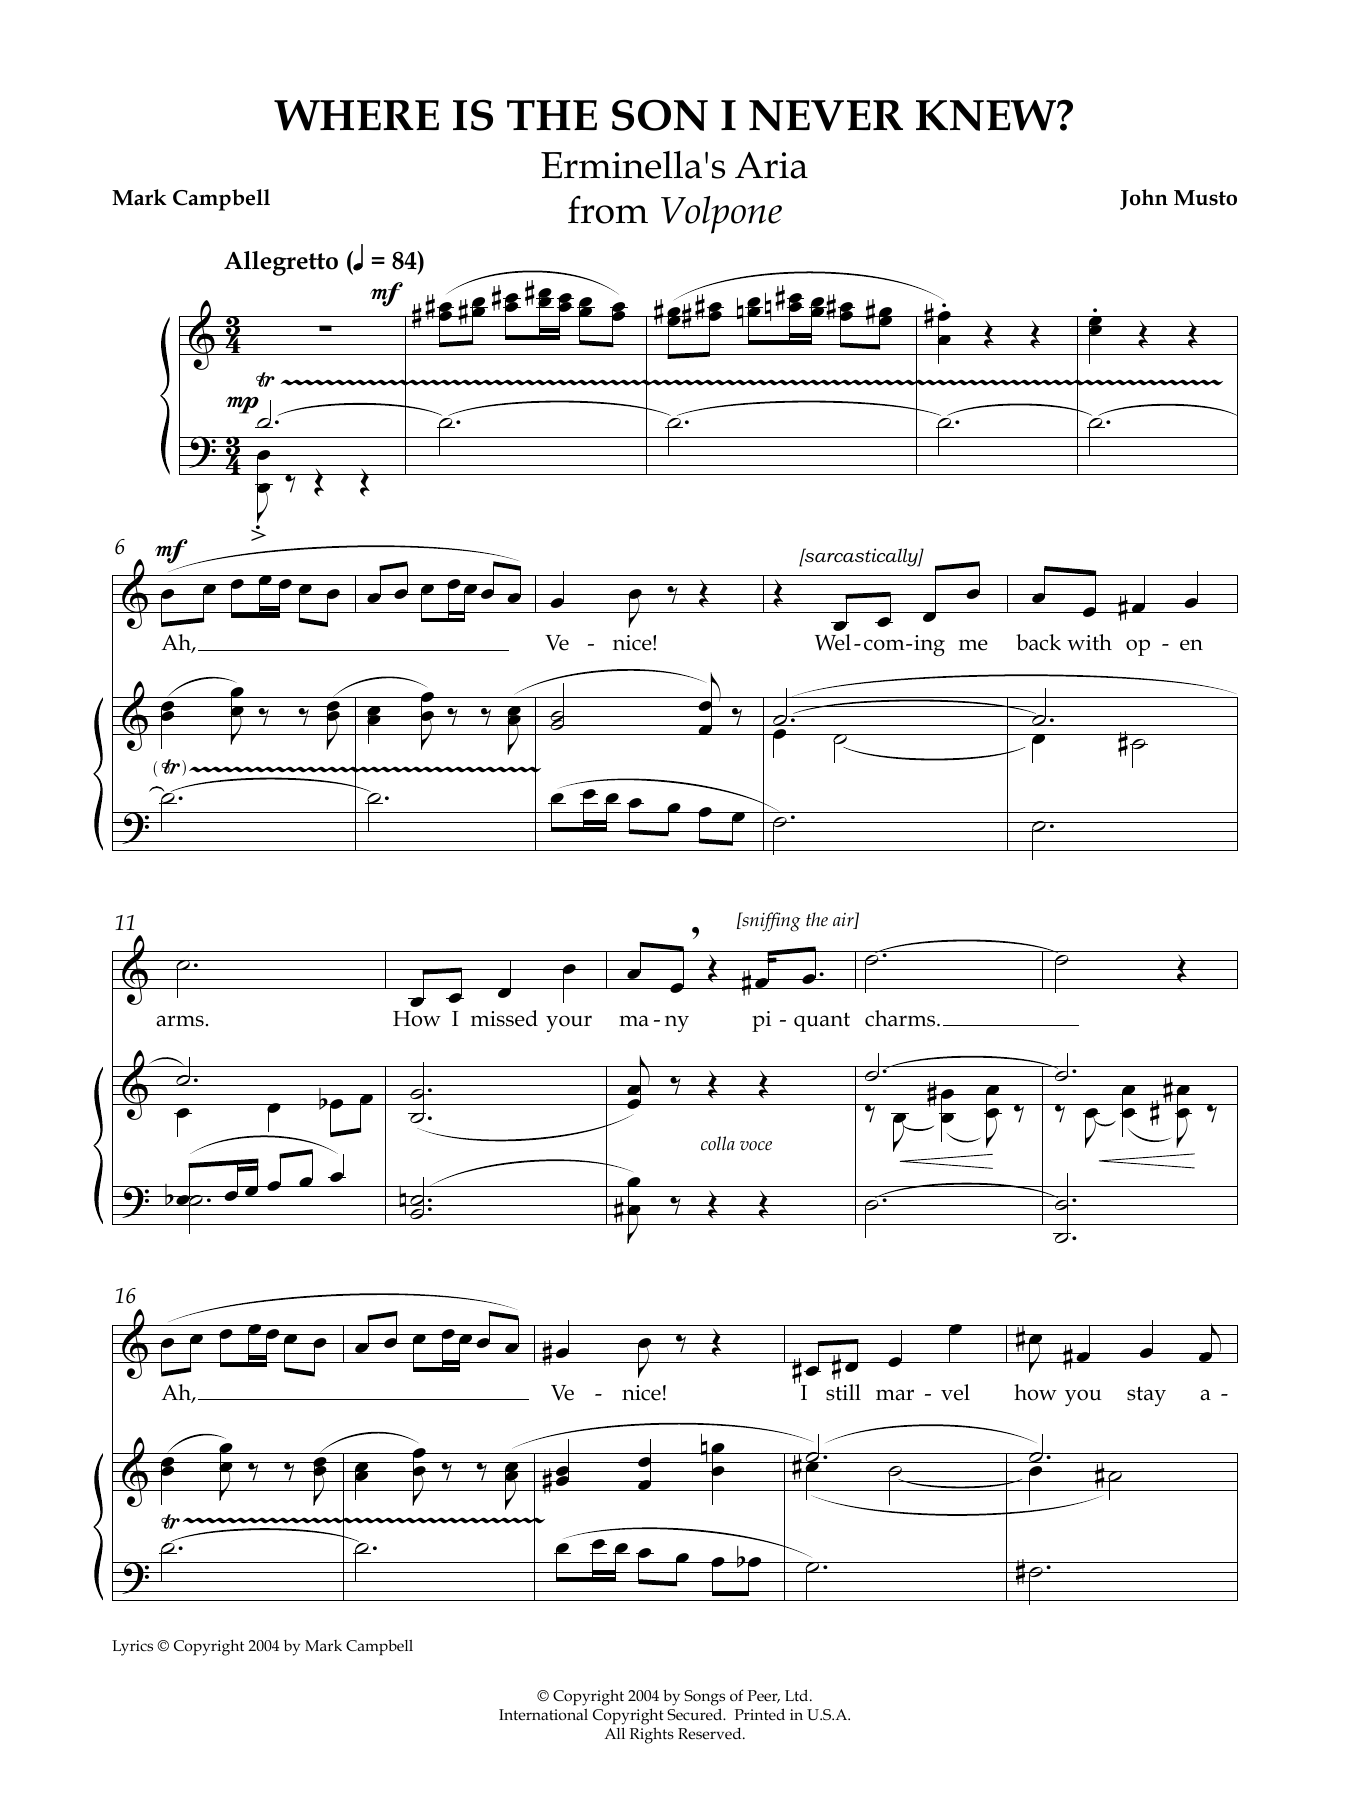 Where Is the Son I Never Knew? Sheet Music